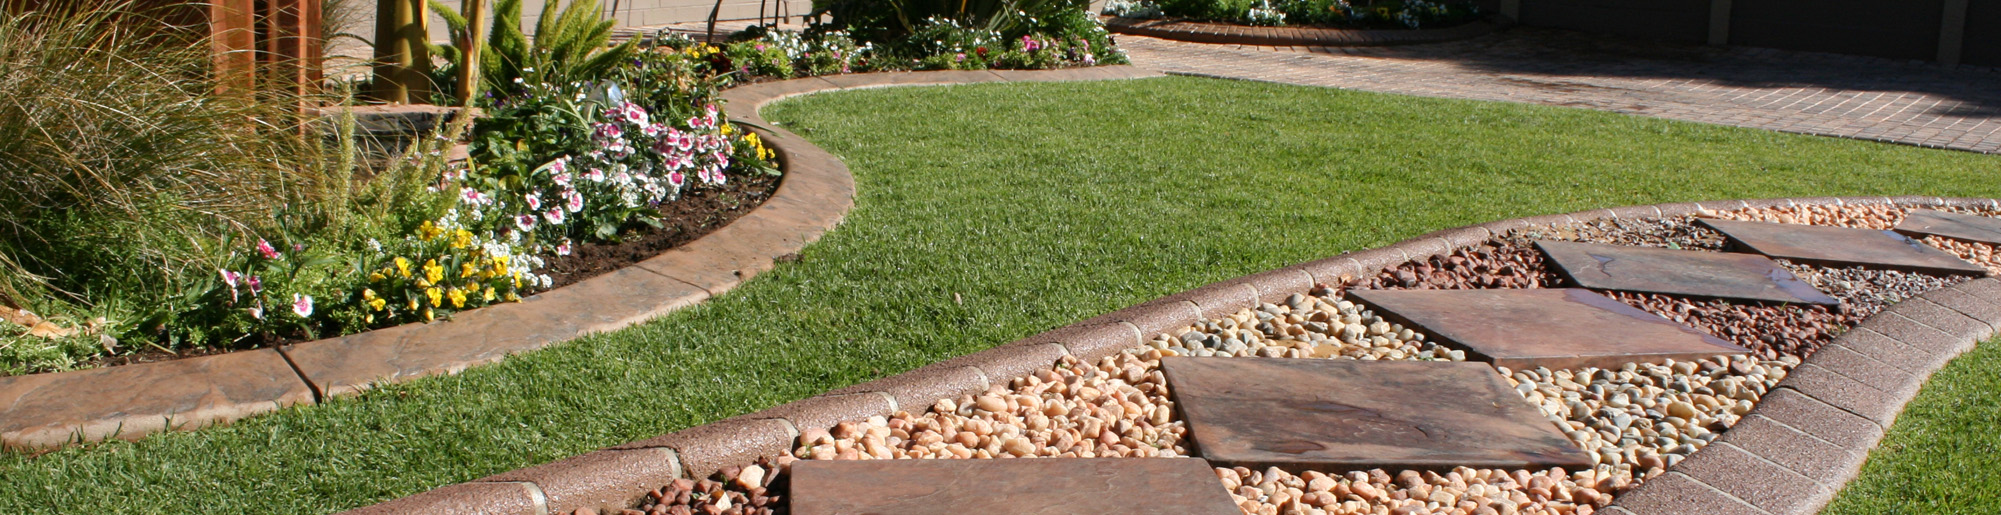 Garden Edging Kwik Kerb